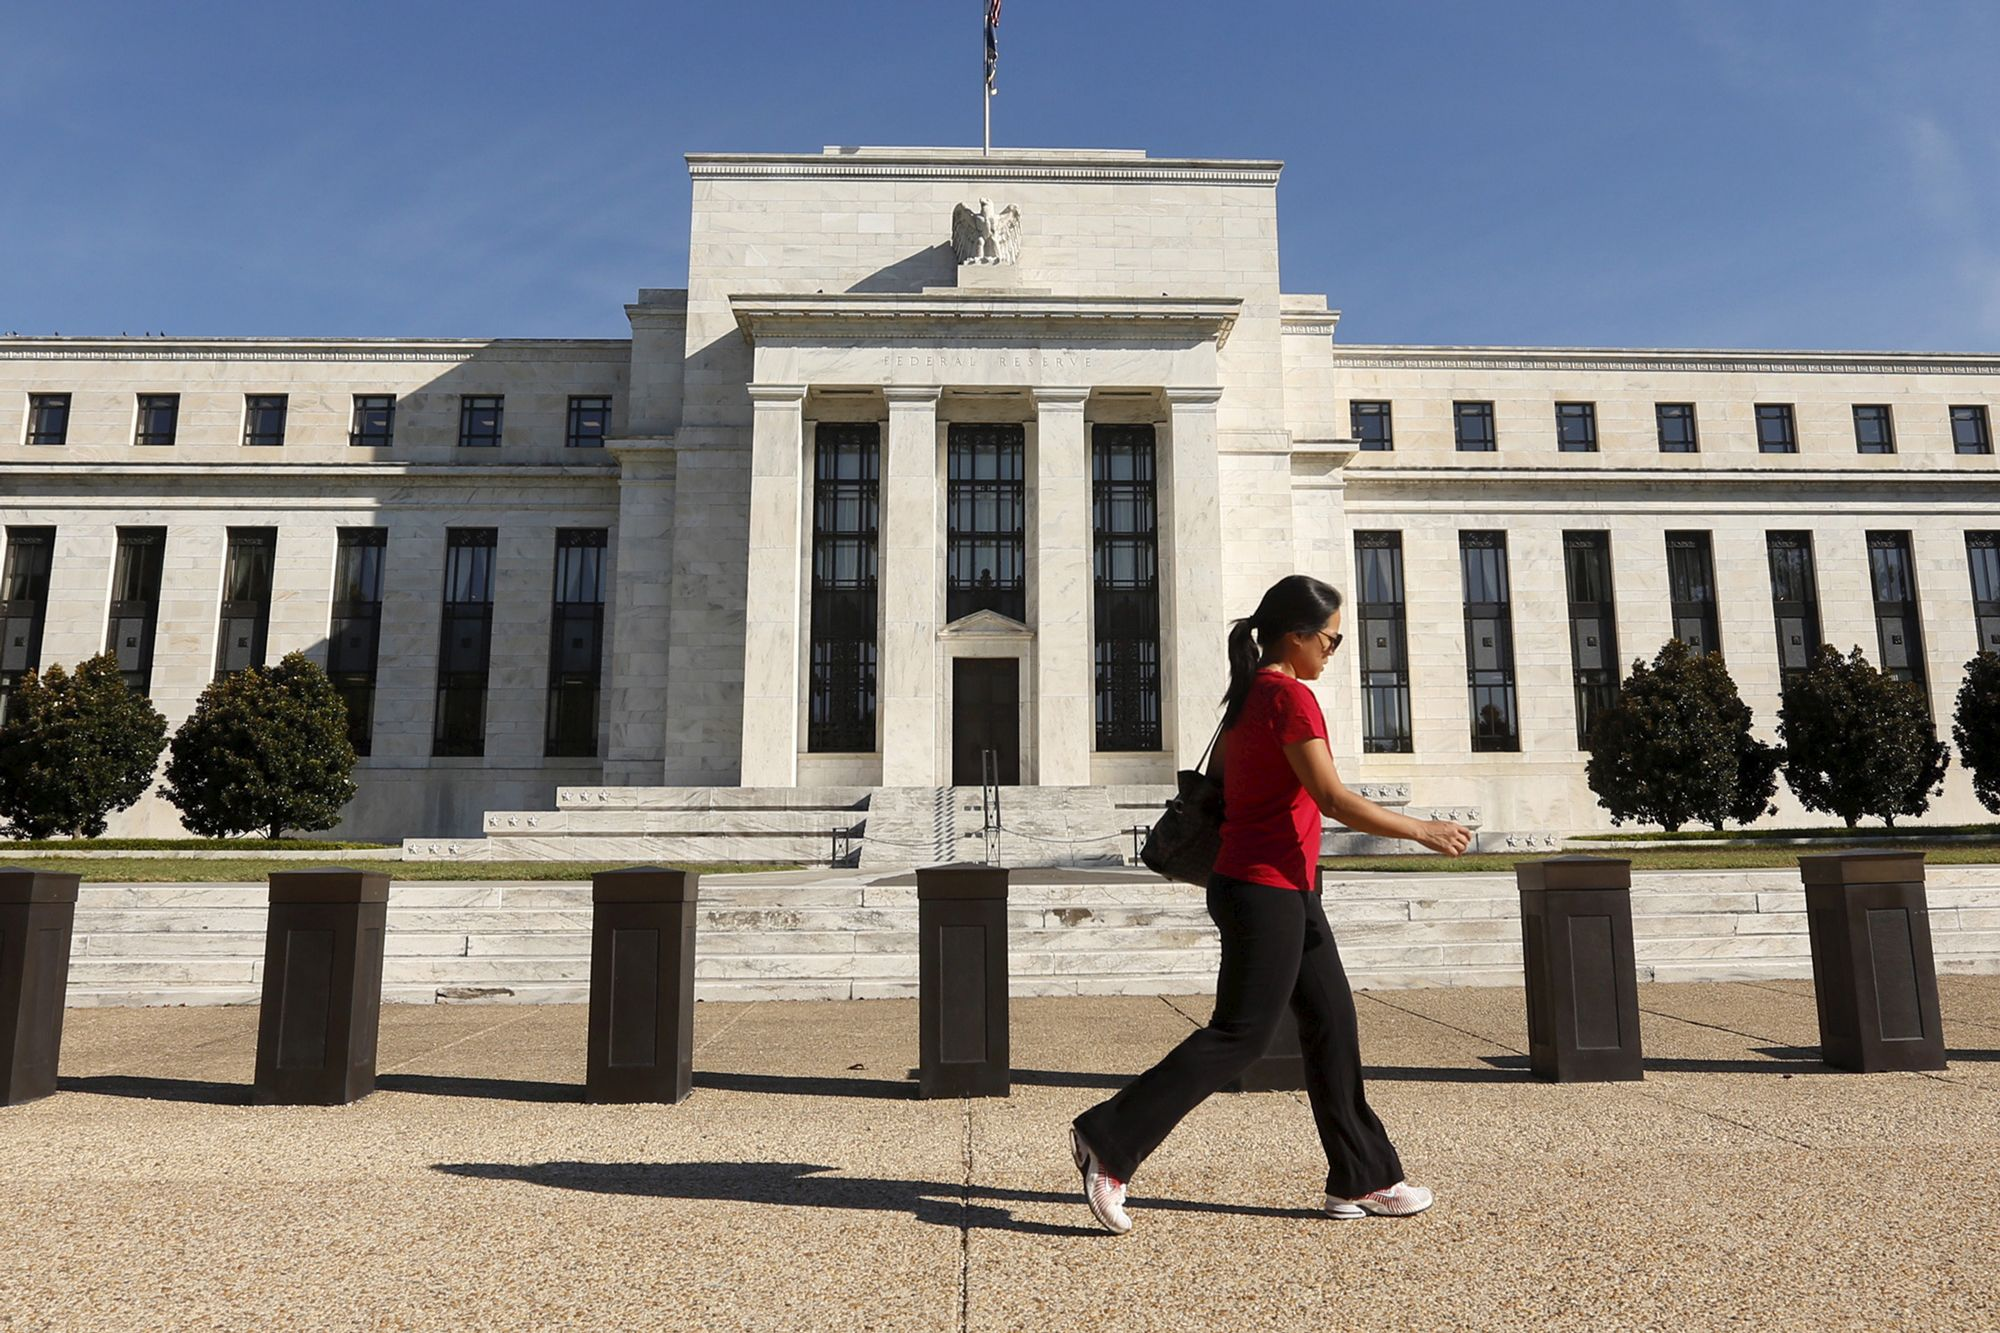 When the Fed cuts rates without a recession, stocks always go higher